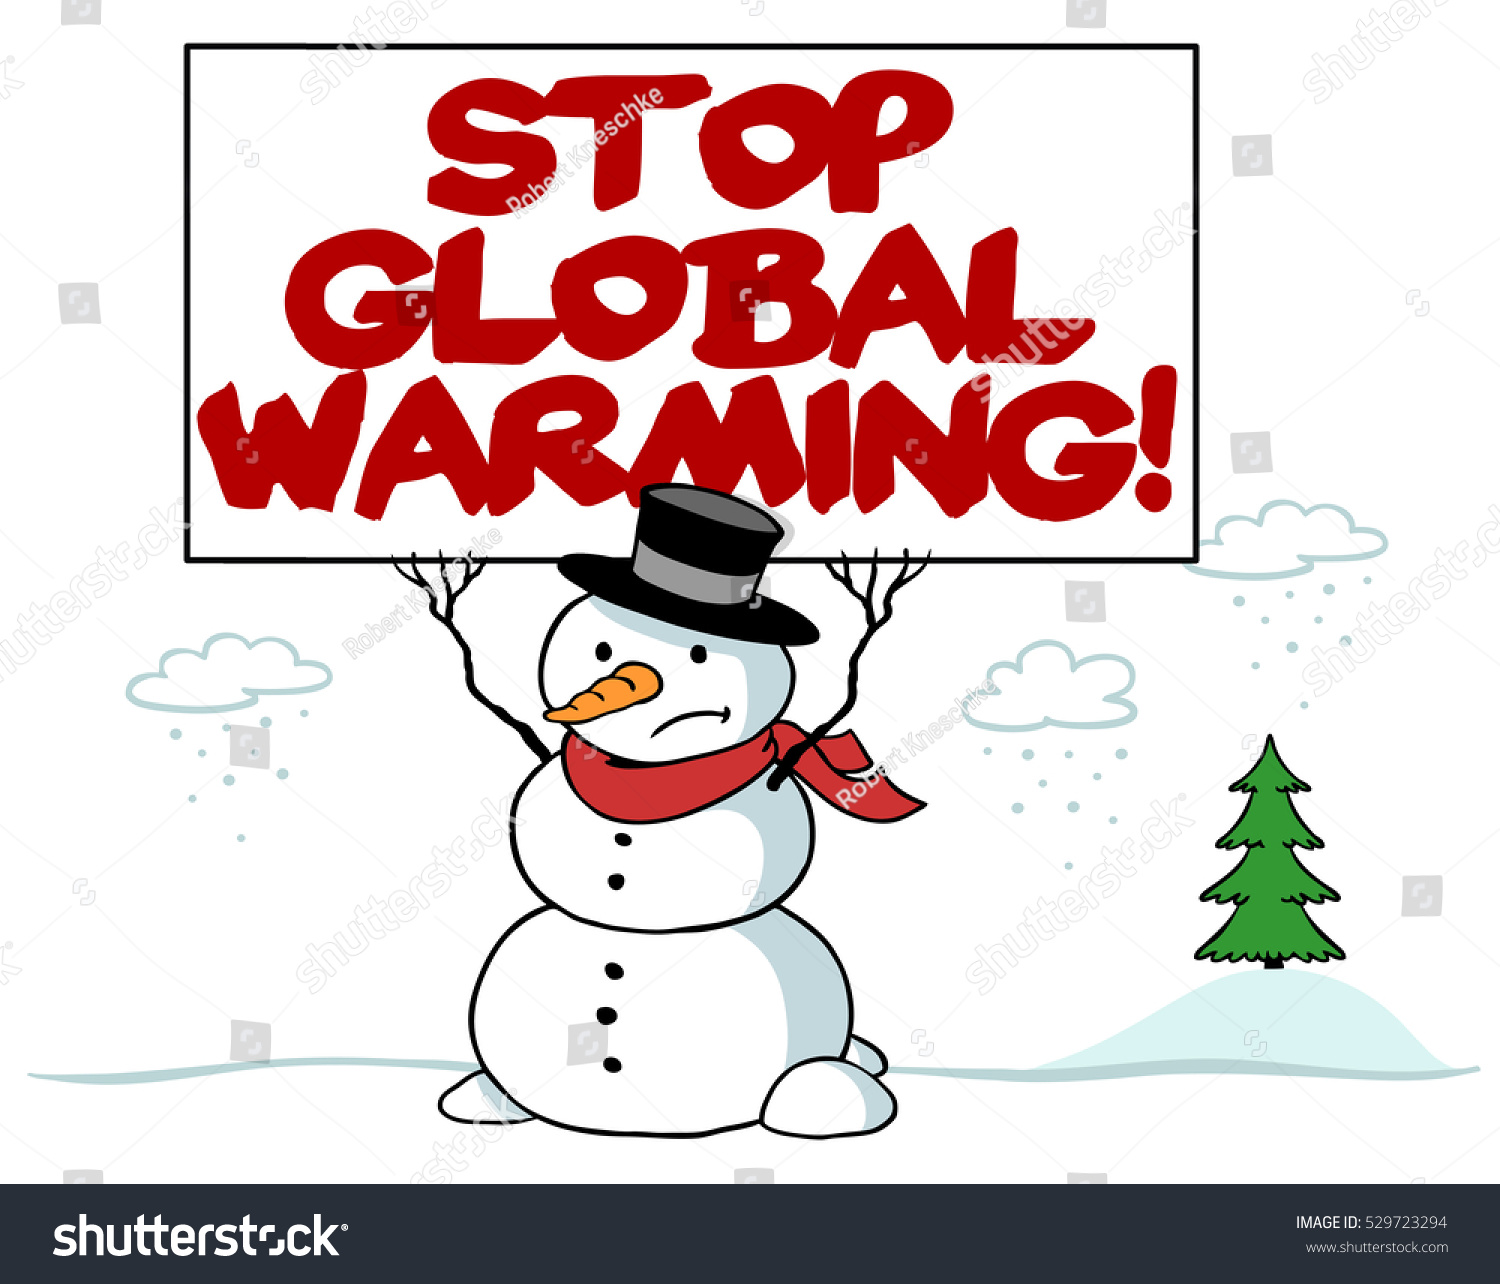 Worksheet Snowman Reading snowman sign reading stop global warming stock illustration with warming